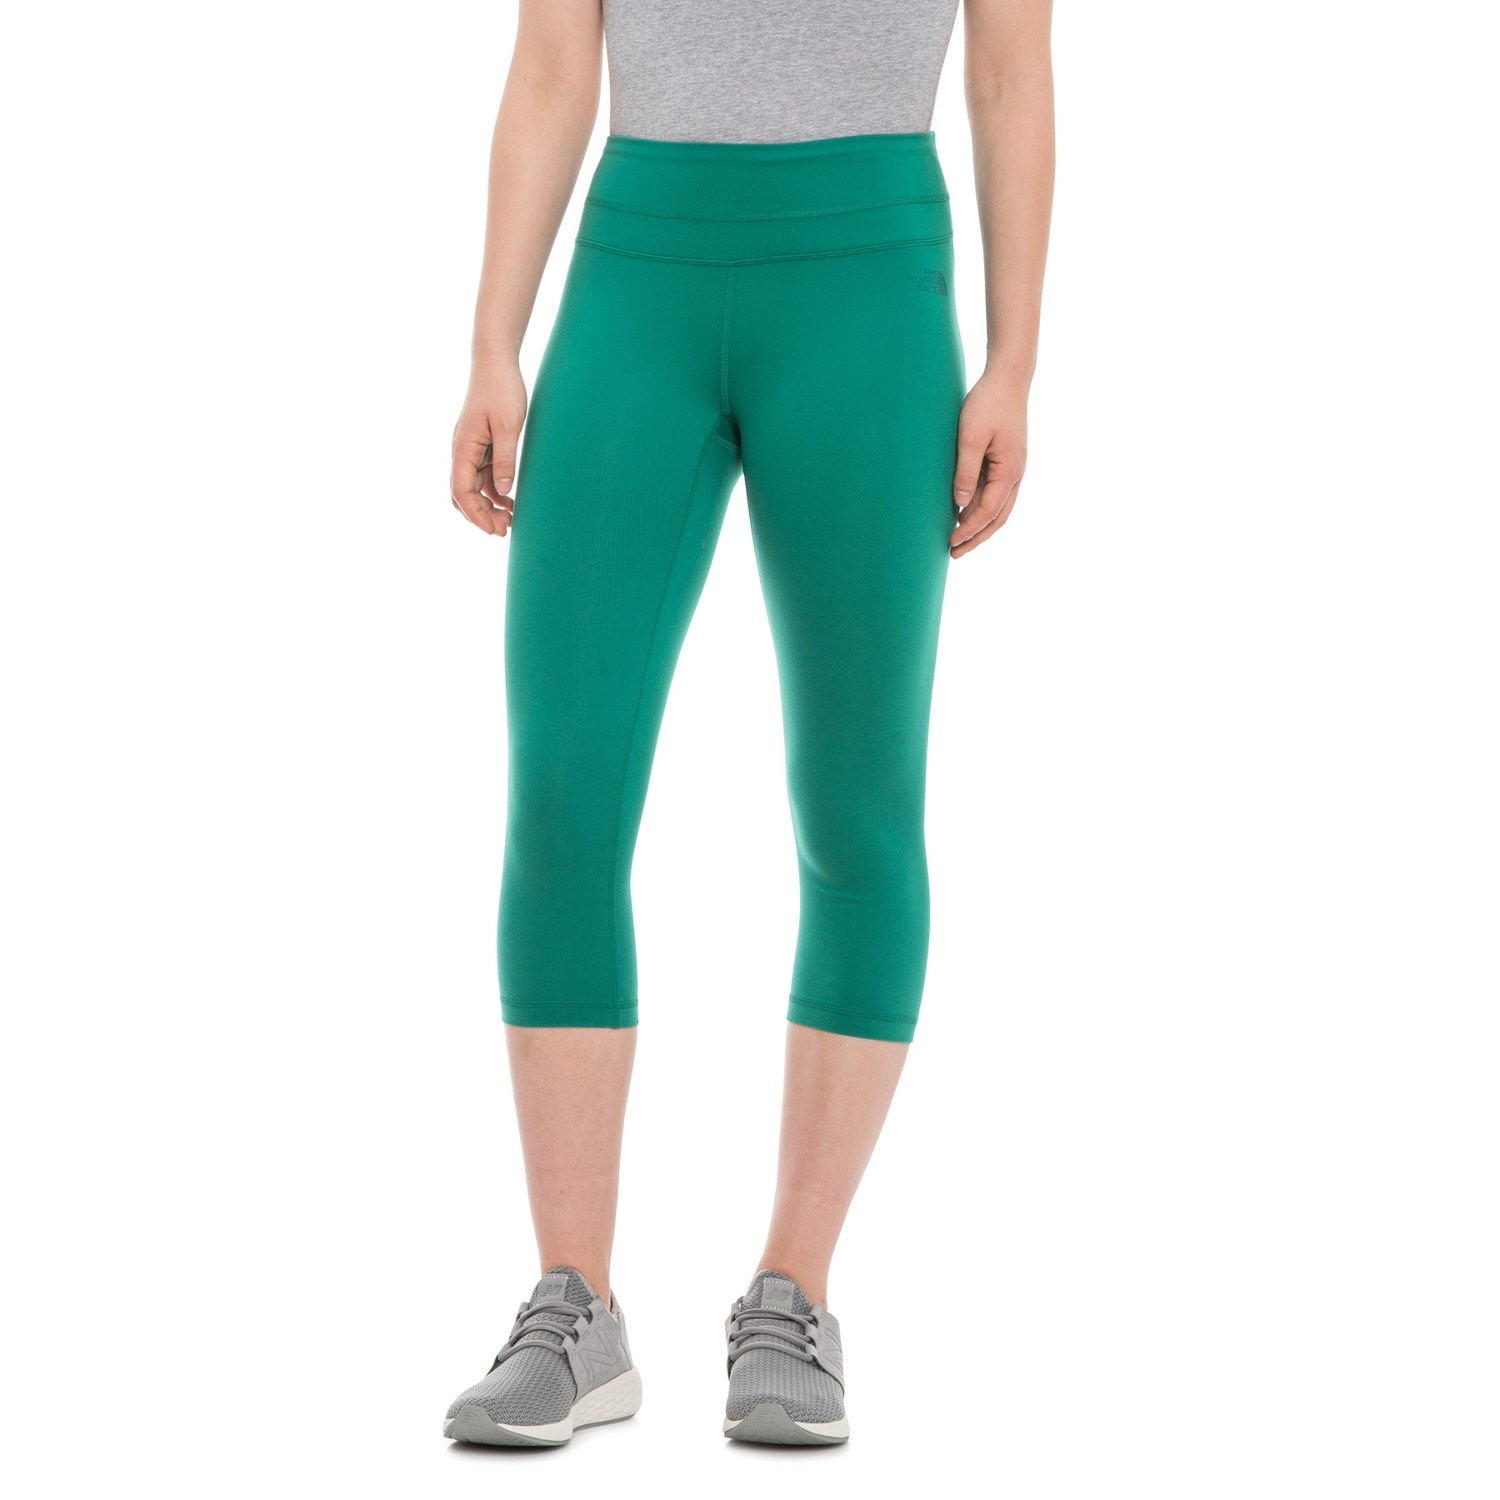 45a4d83742607 The North Face Hatha Capris (For Women) in Conifer Teal ...